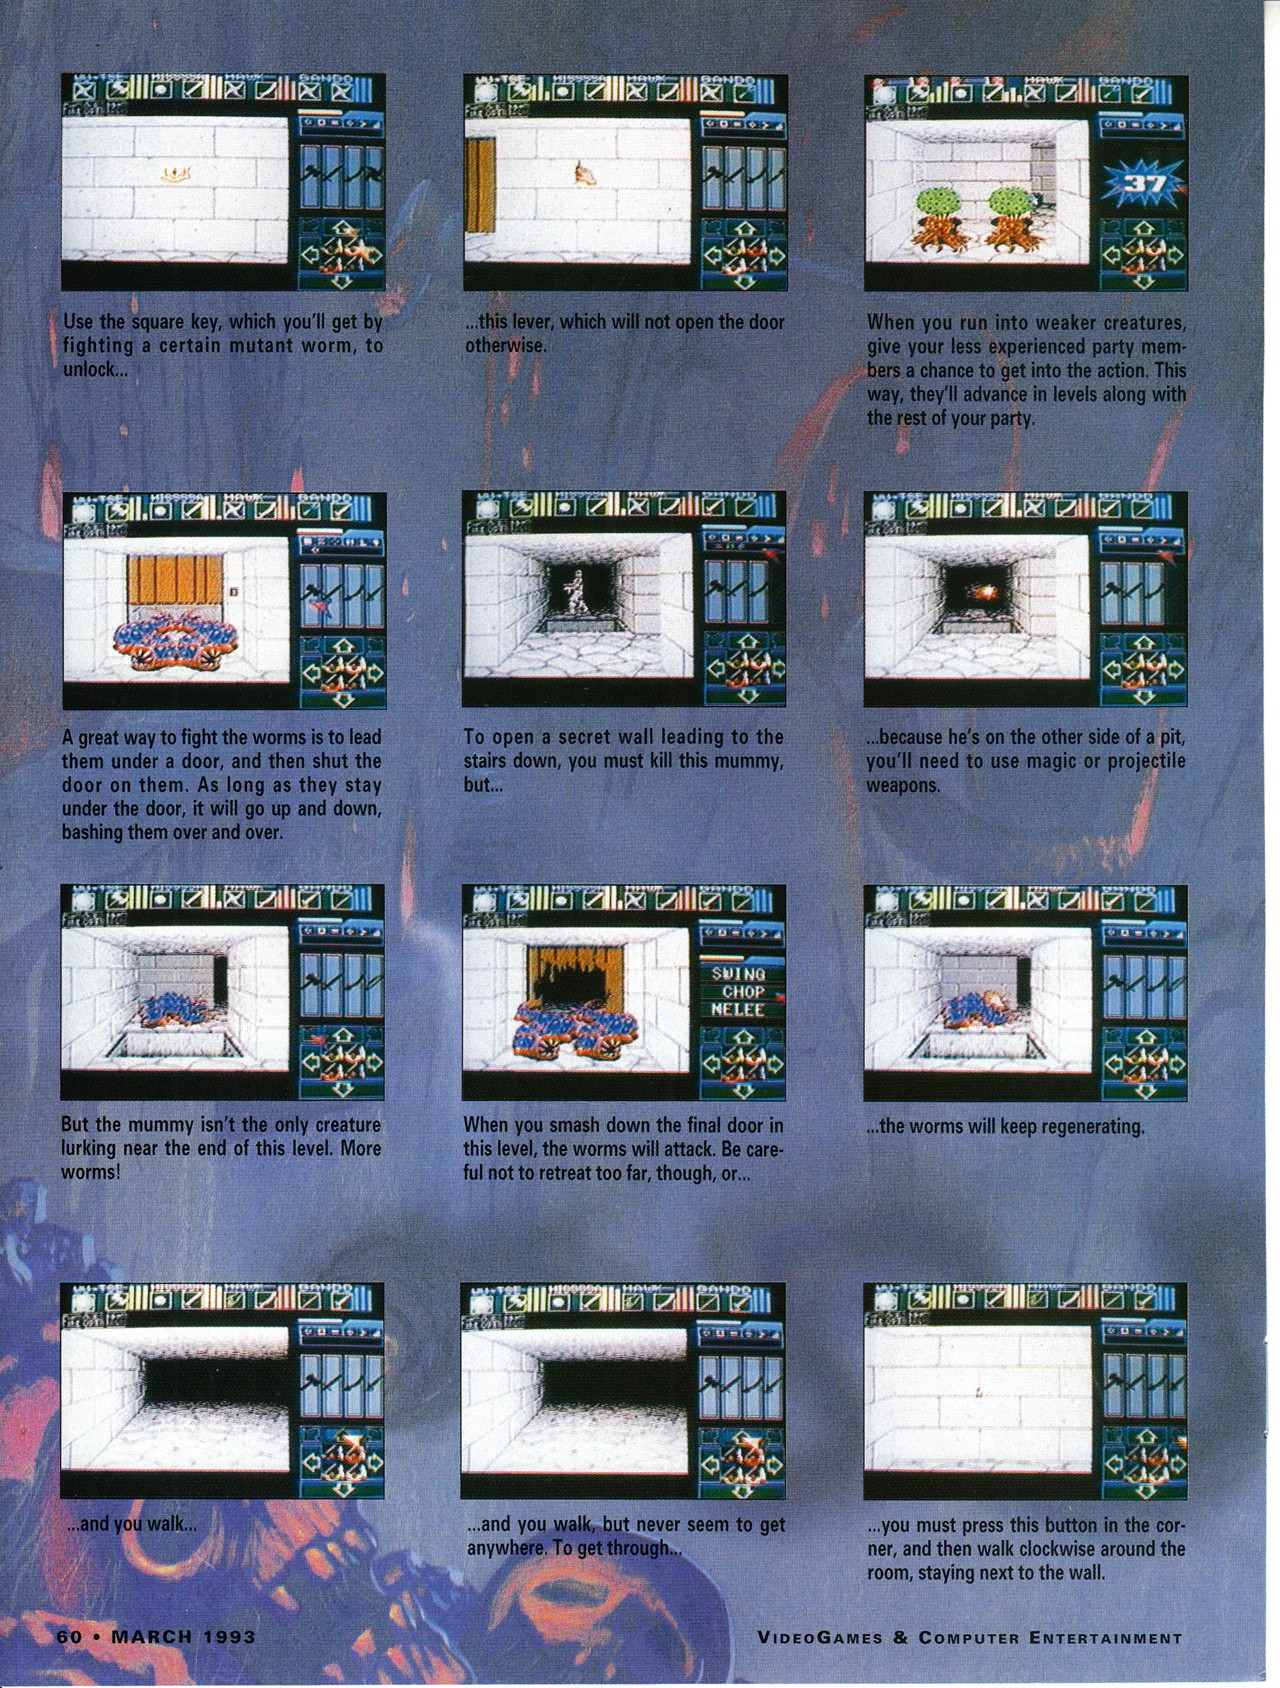 Dungeon Master for Super NES Guide published in American magazine 'VideoGames And Computer Entertainment', Issue #50 March 1993, Page 60